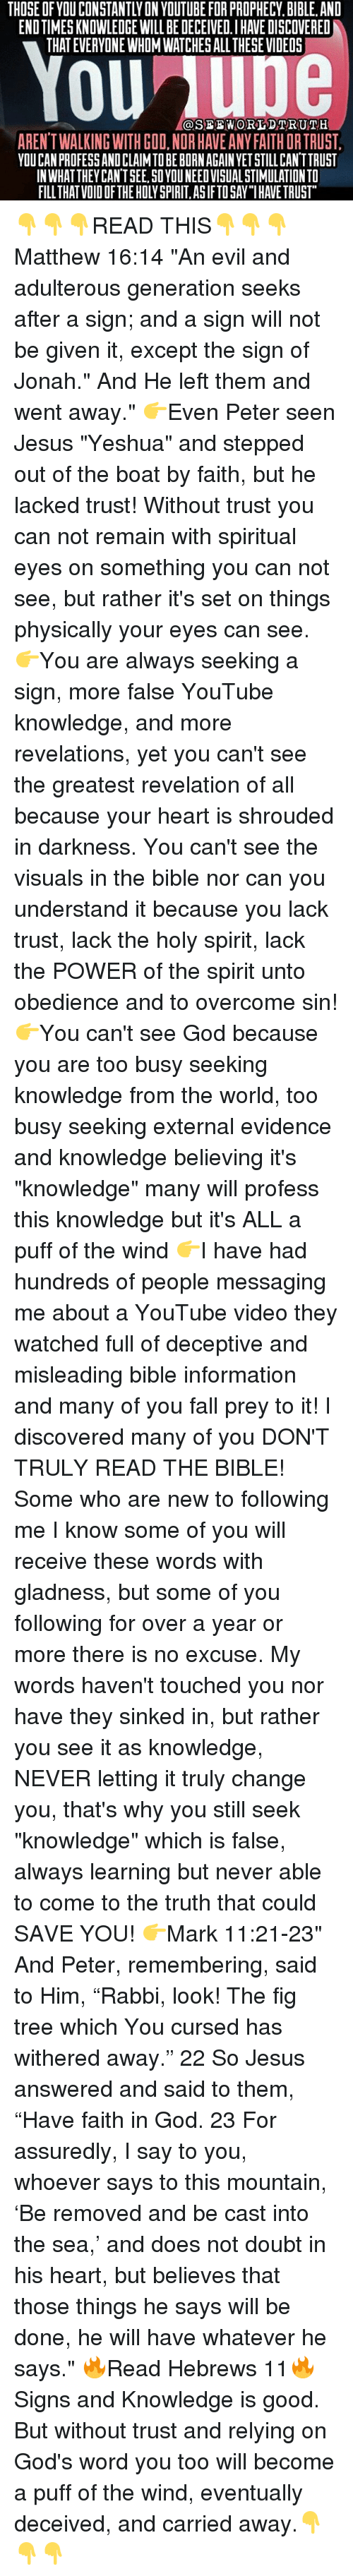 THOSE OF YOU CONSTANTLY ON YOUTUBE FOR PROPHECY BIBLE AND END TIMES